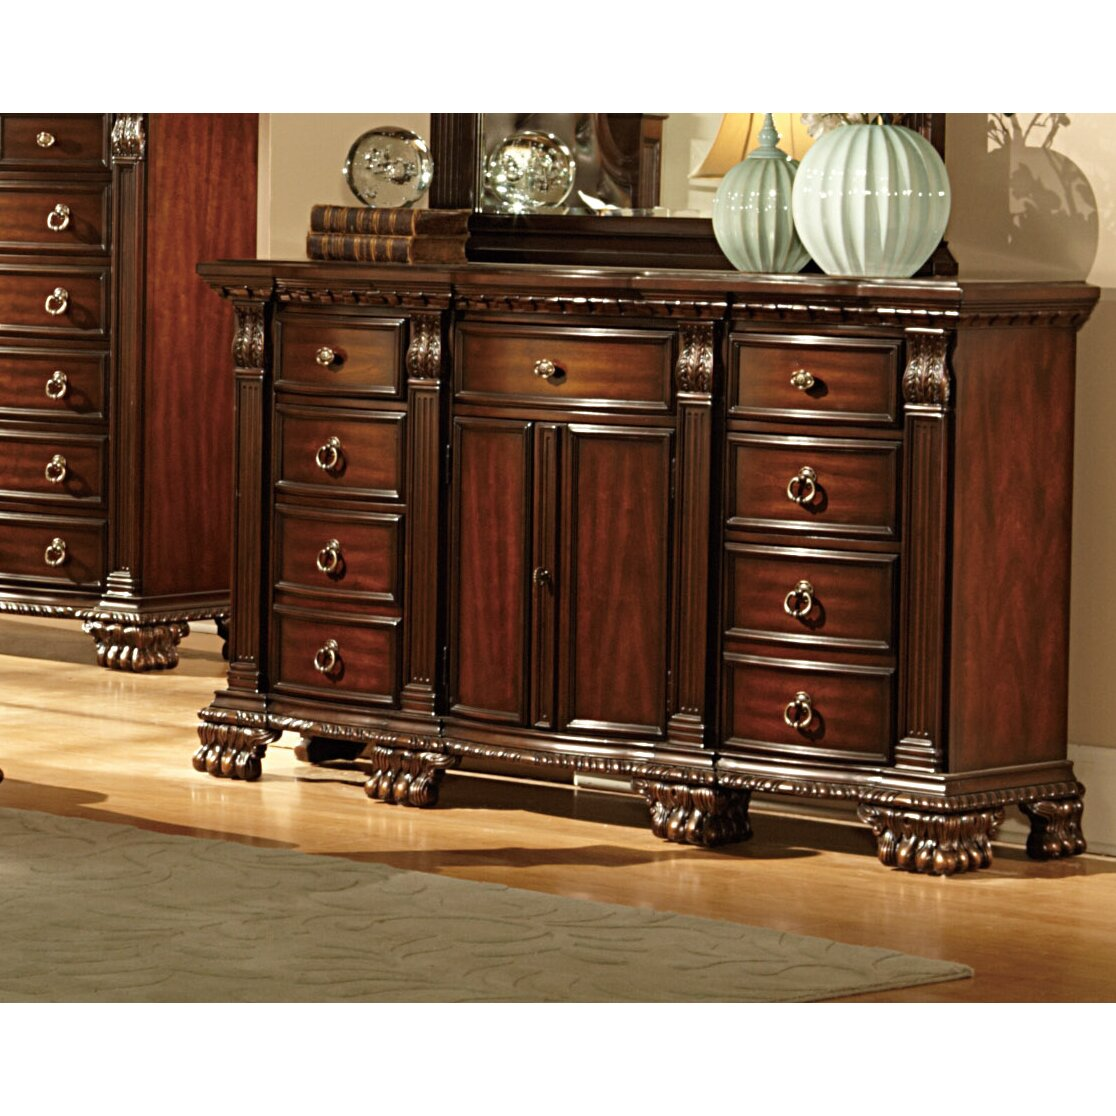 Woodbridge Home Designs Furniture Review Woodhaven Hill Orleans Queen Panel Customizable Bedroom